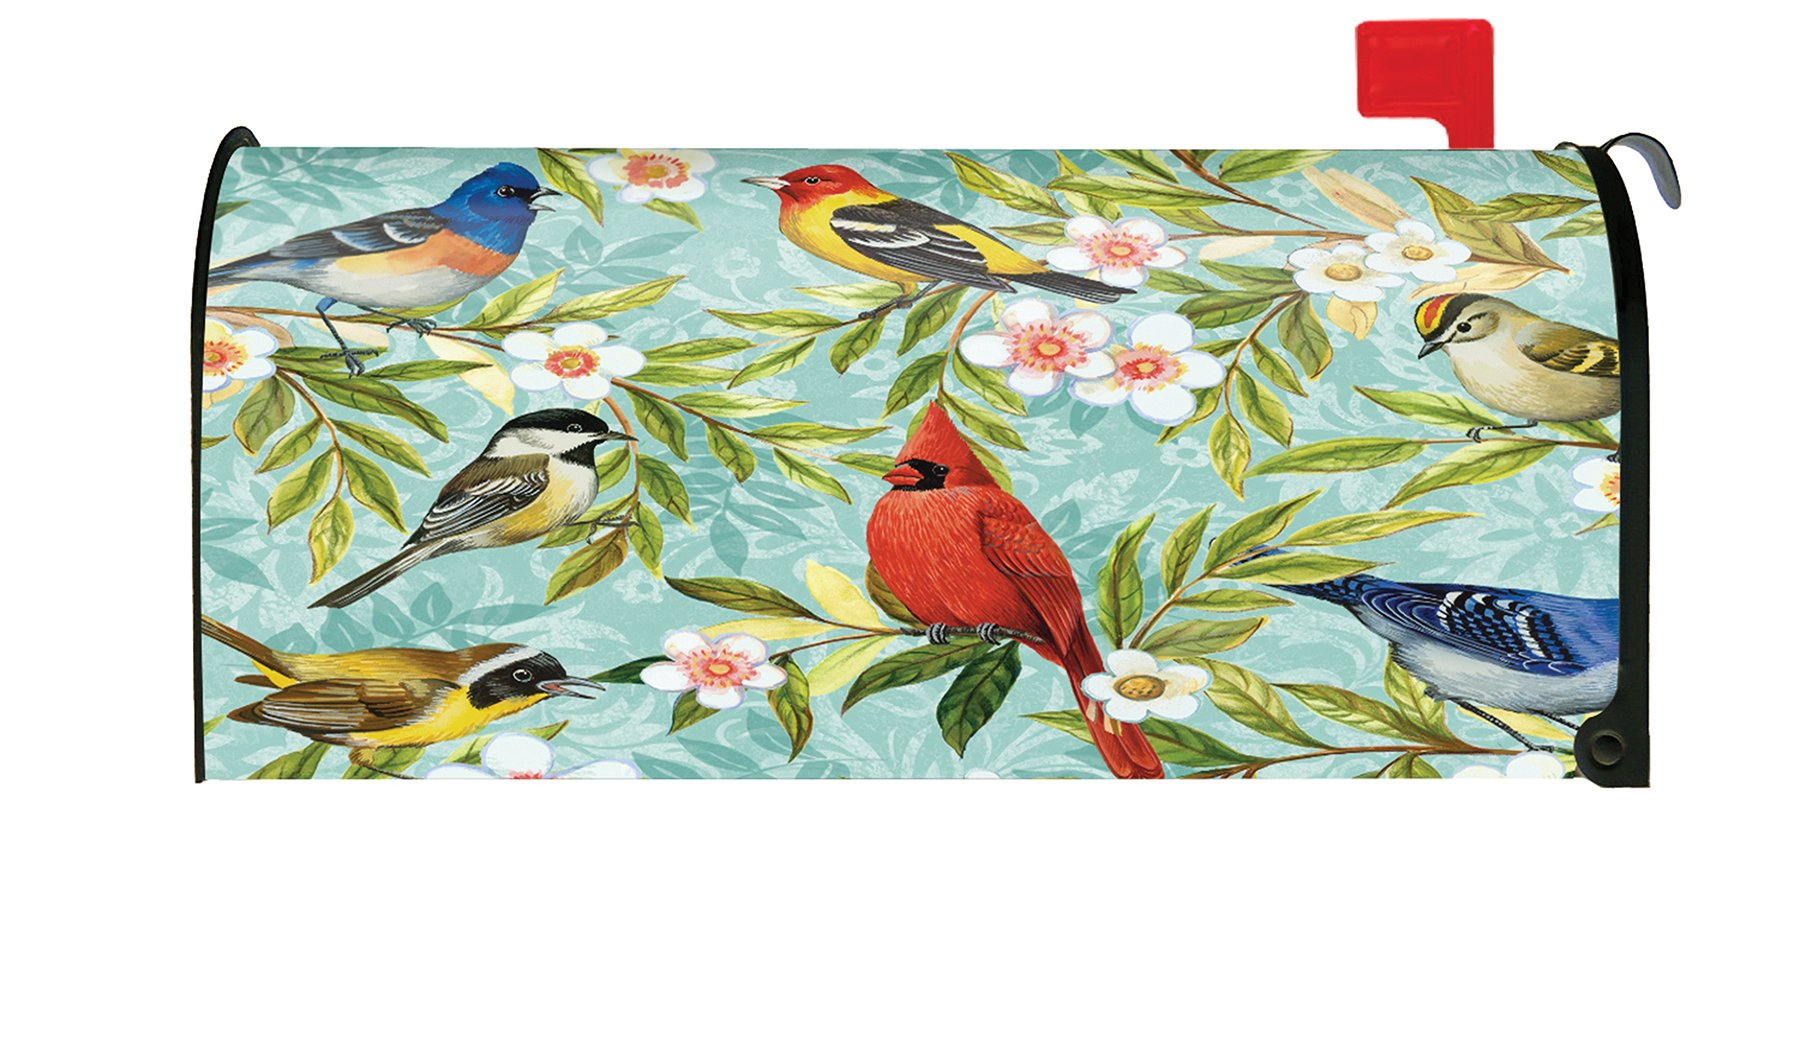 Toland Home Garden 310038 Bird Collage Colorful Spring Flower Cardinal Jay Magnetic Mailbox Cover